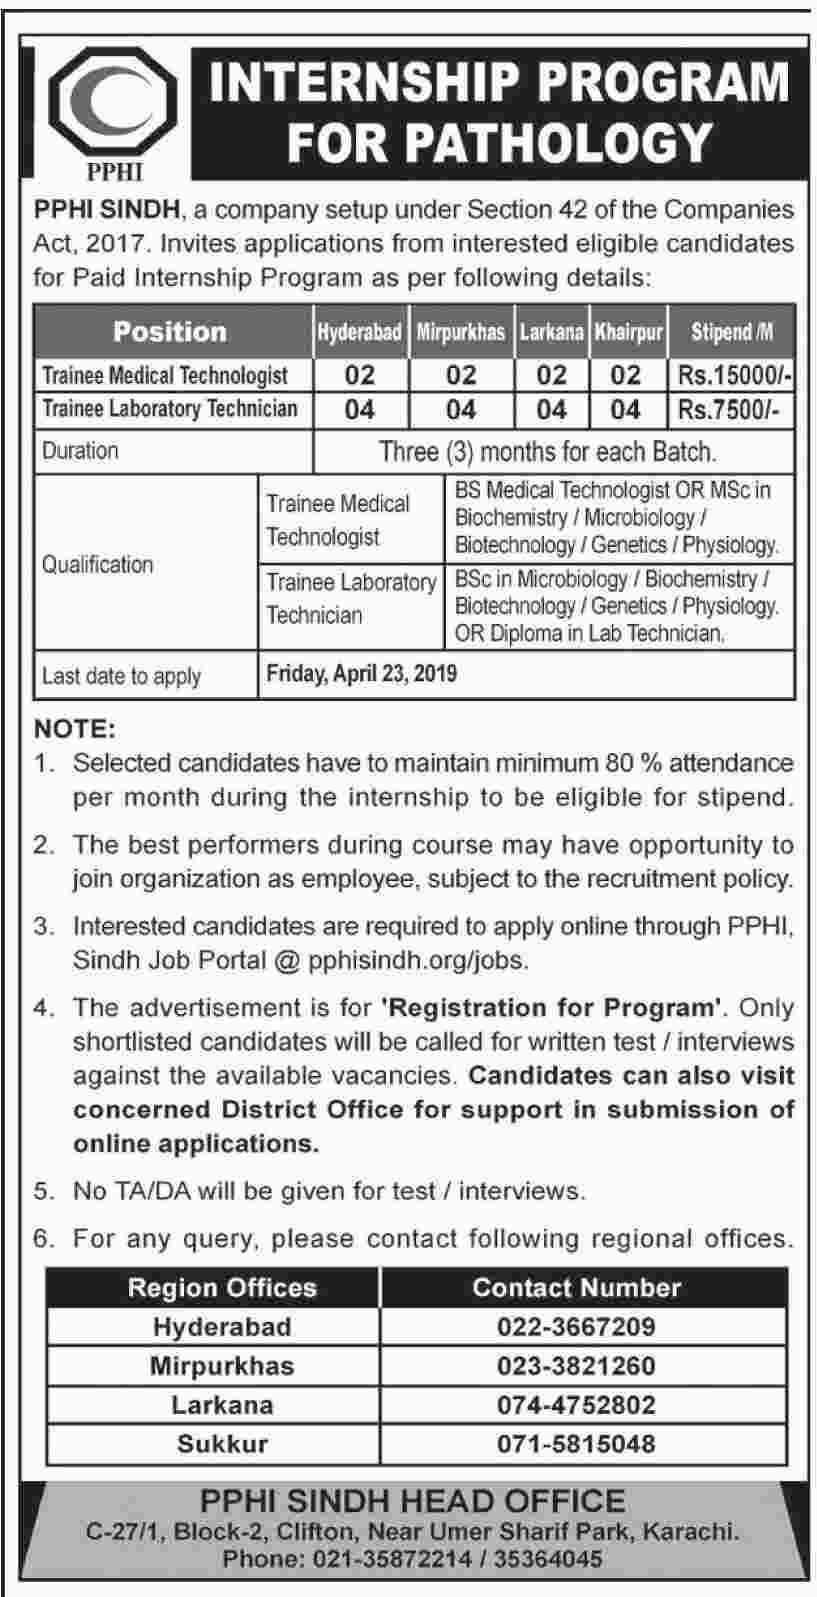 newpakjobs PPHI Internship Program for Pathology April 2019